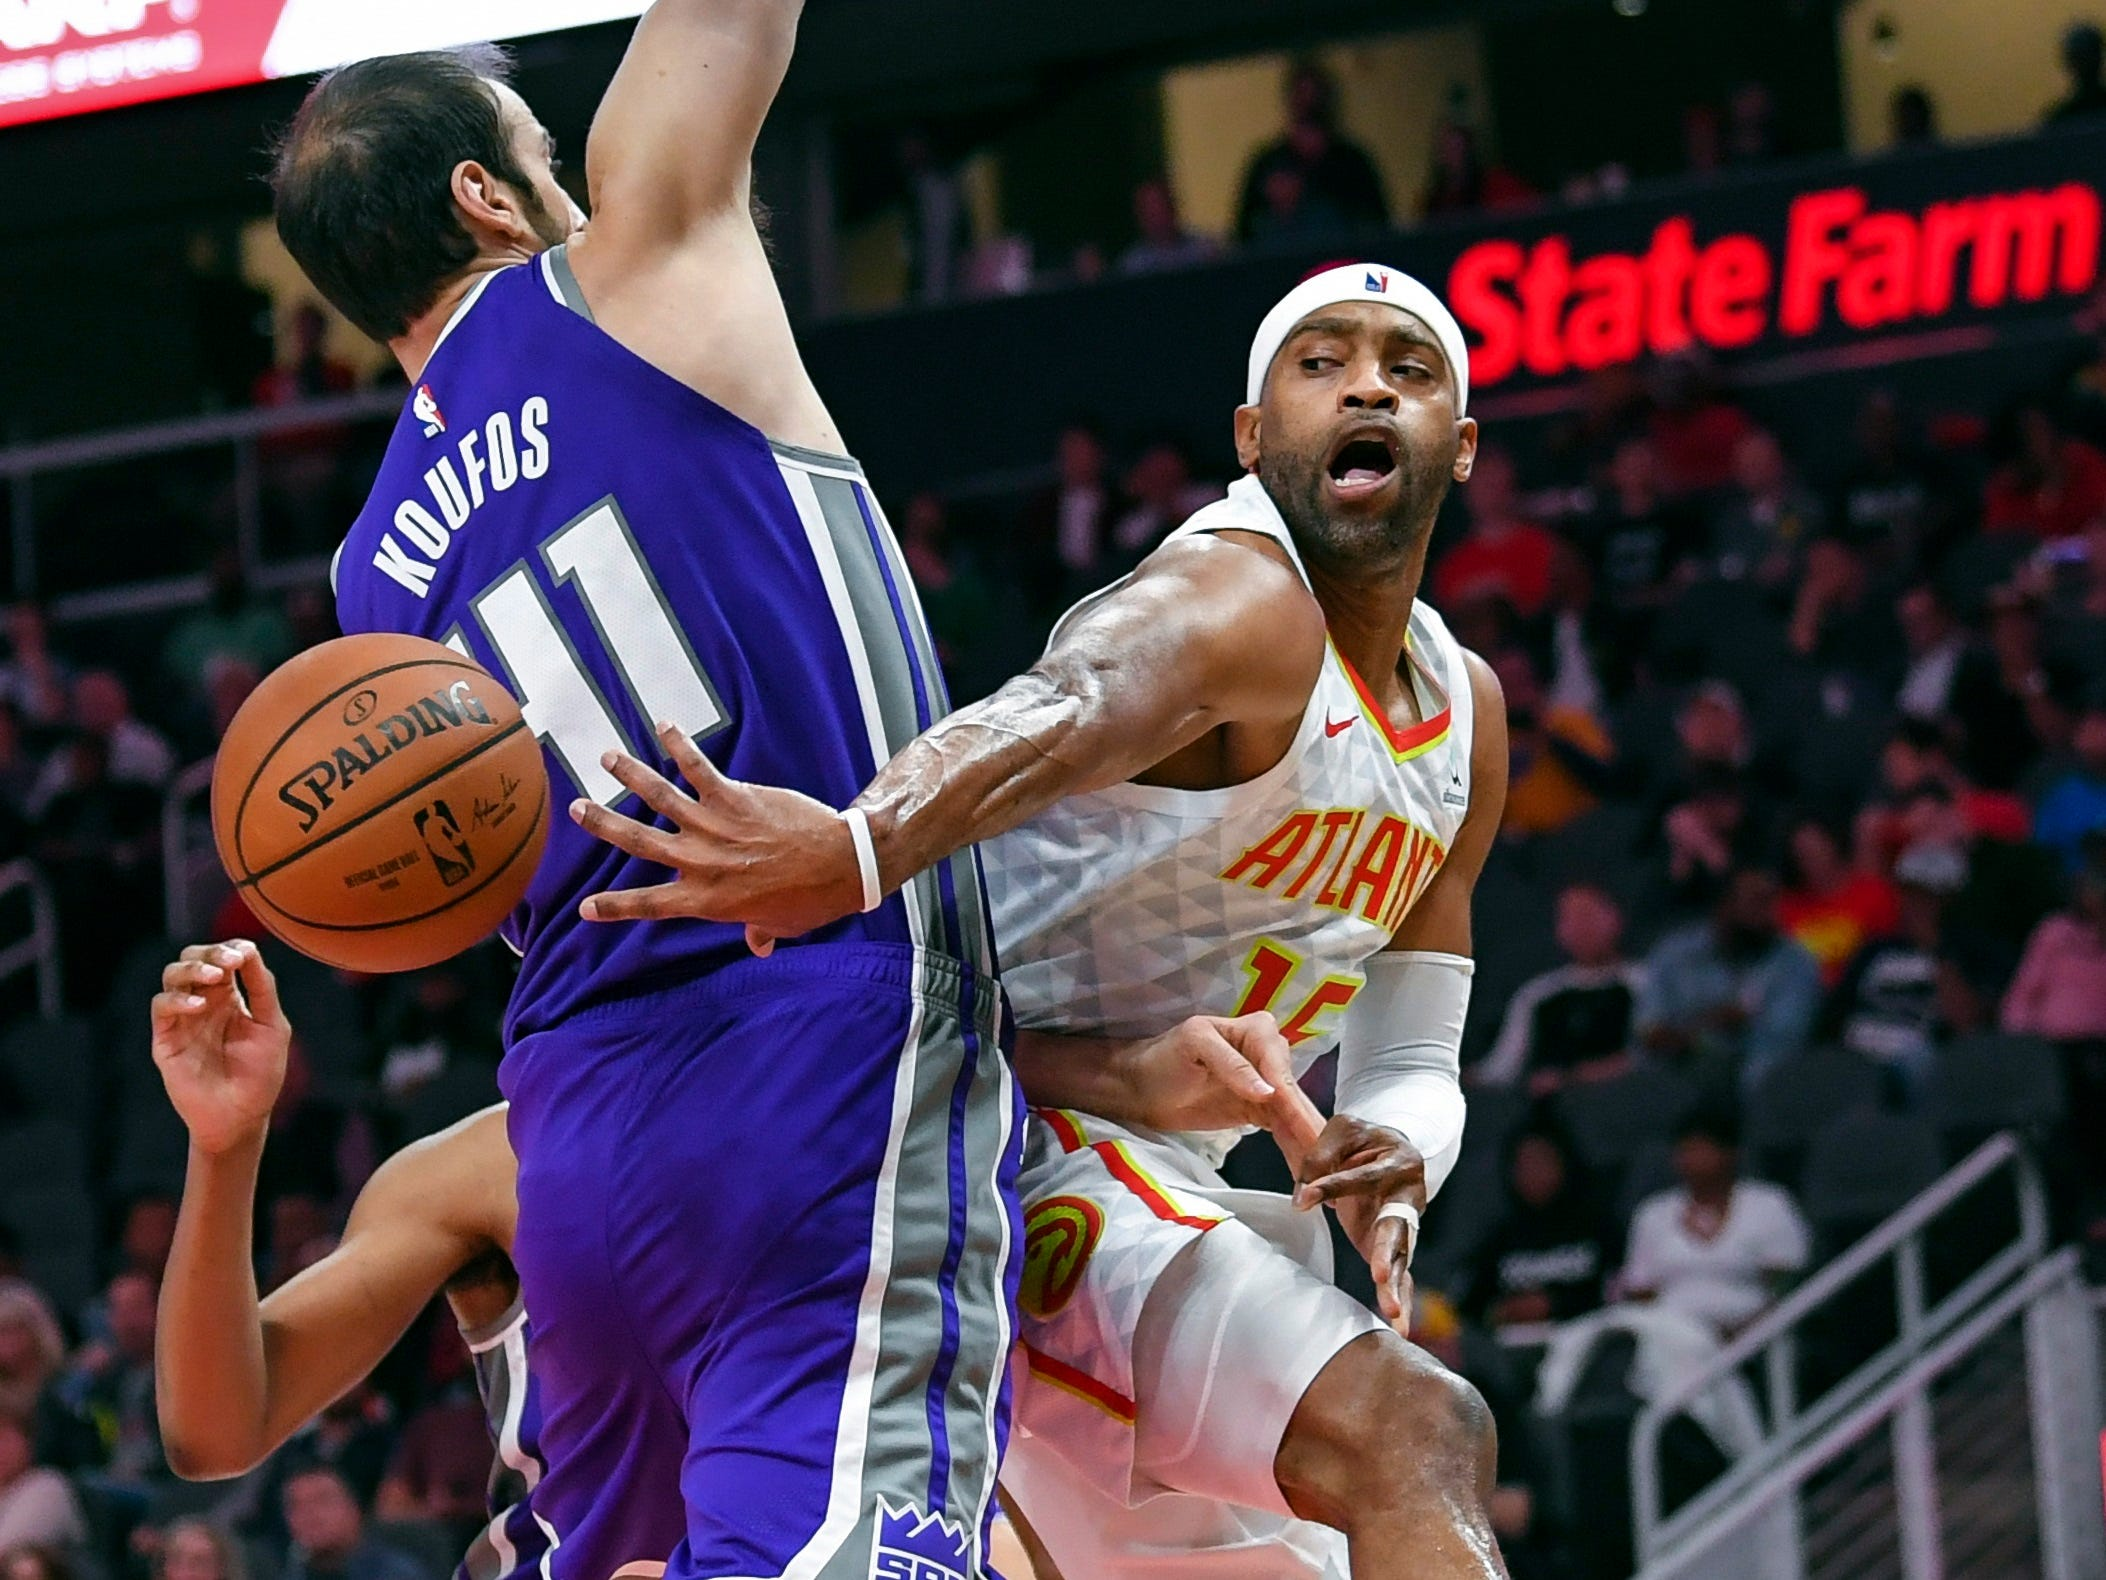 Nov. 1: Hawks guard and oldest player in the league Vince Carter (15) shows he's still got it with a slick pass around Kings defender Kosta Koufos (41) during the second half in Atlanta.